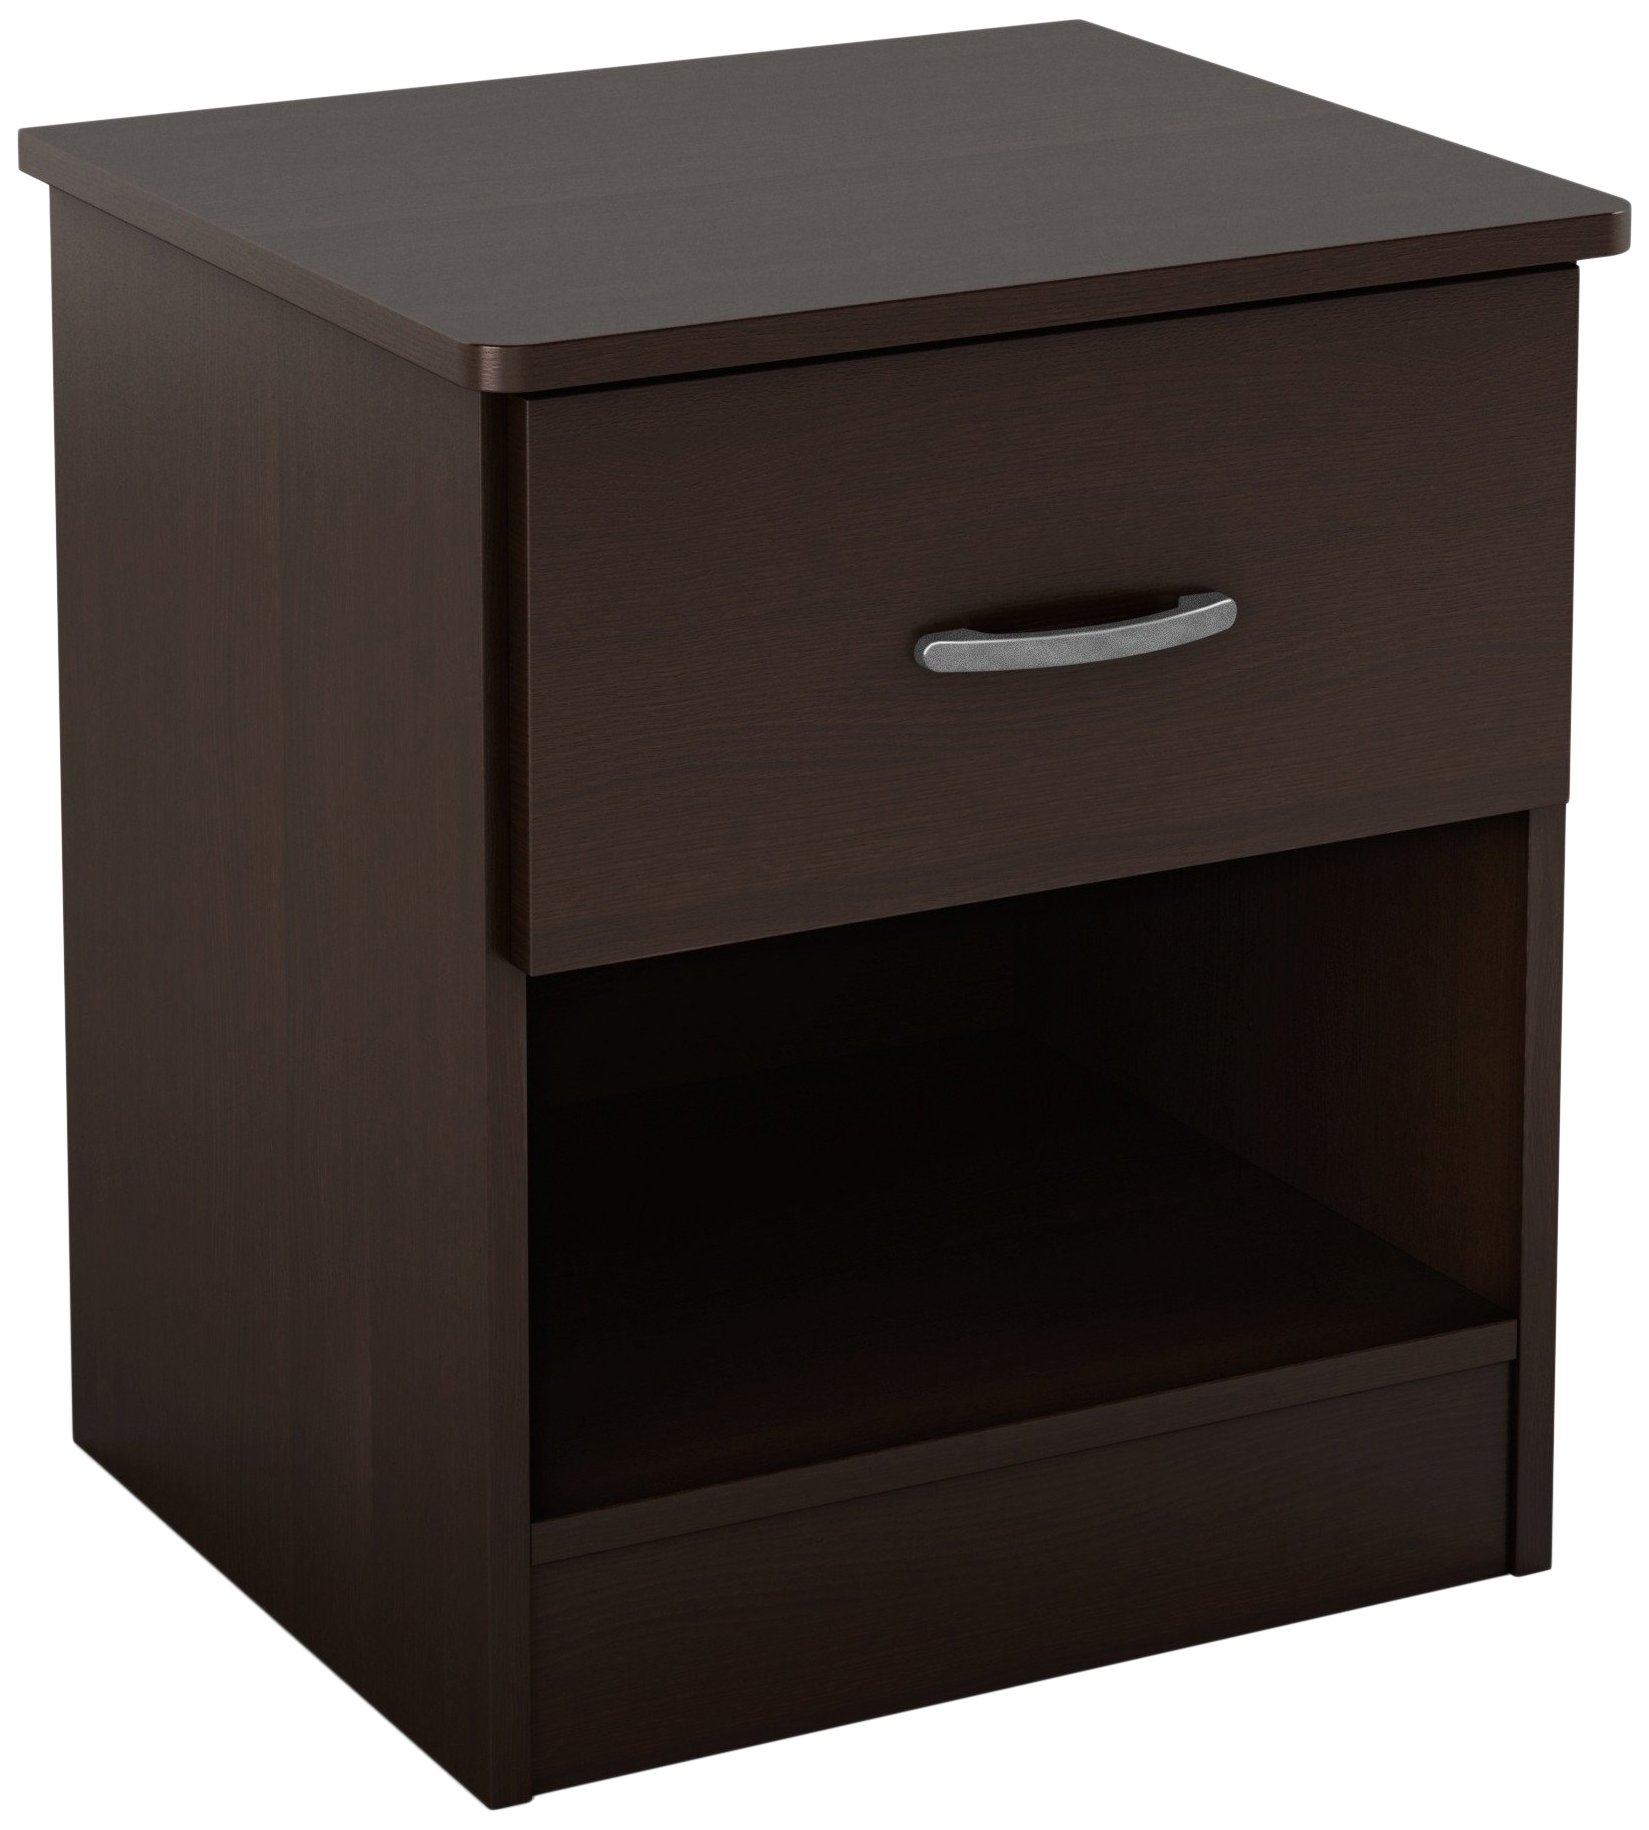 South Shore Libra 1-Drawer Nightstand, Chocolate